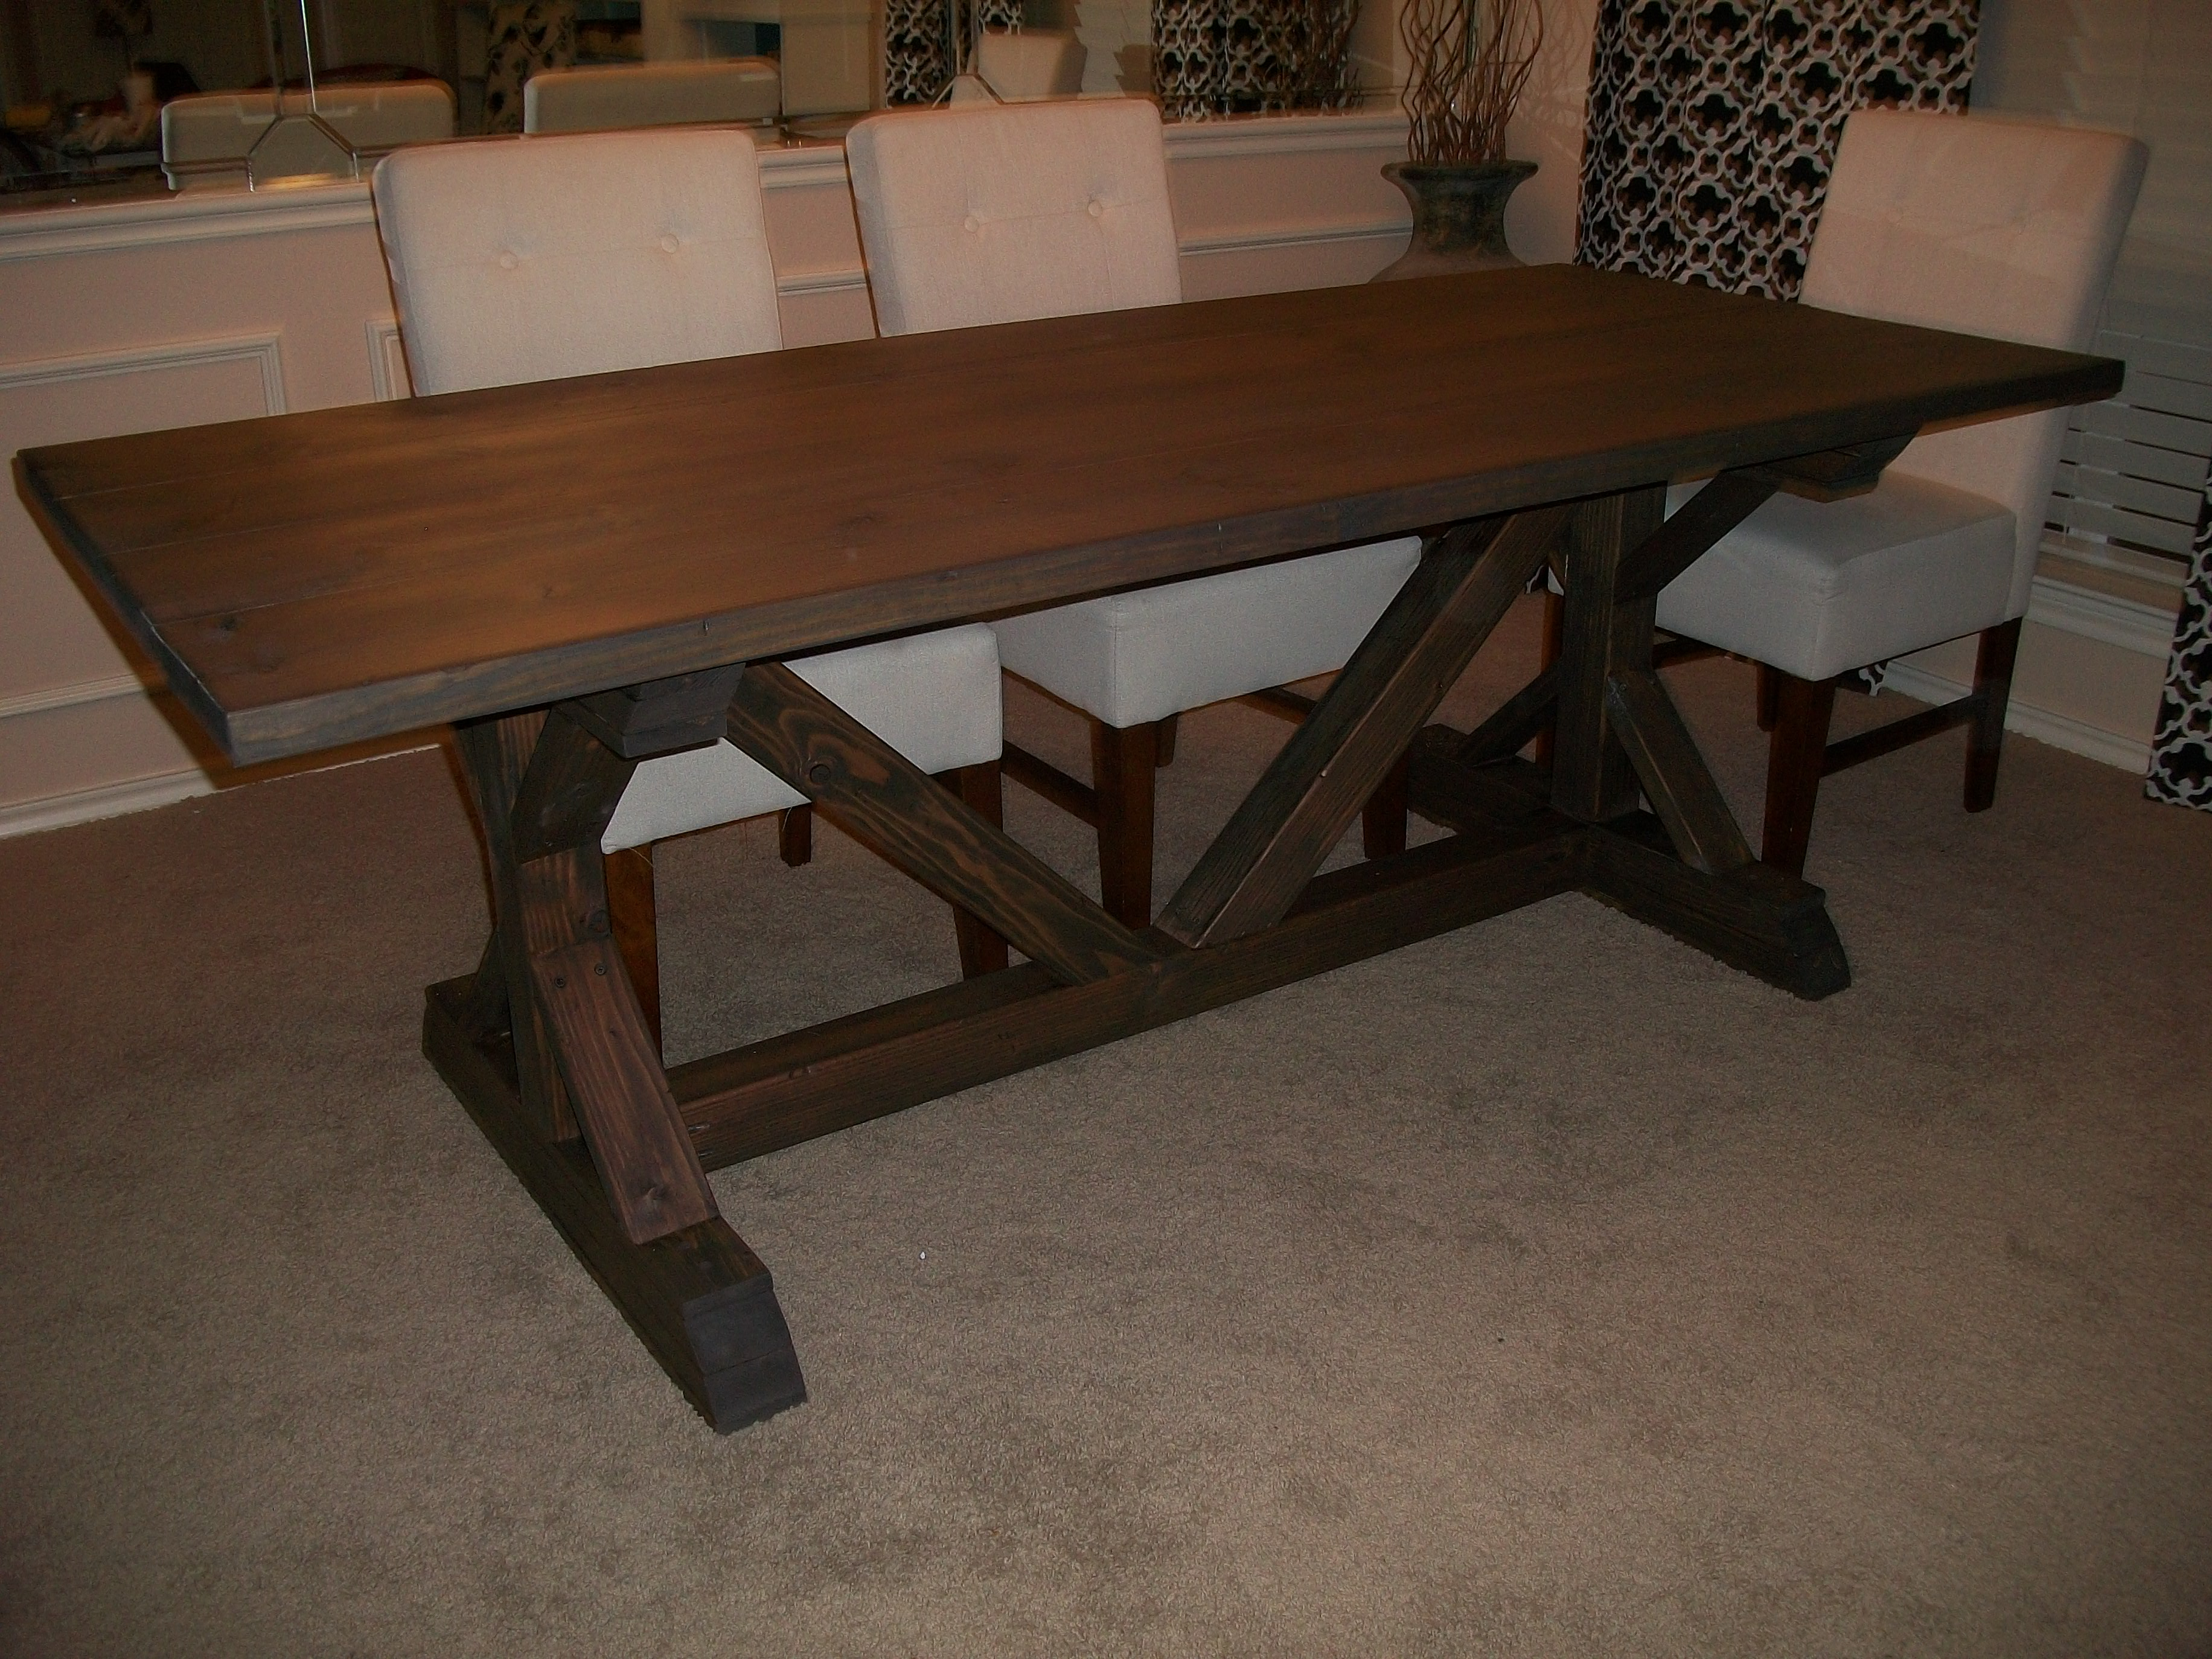 Fancy X Farmhouse Table - Modified - DIY Projects